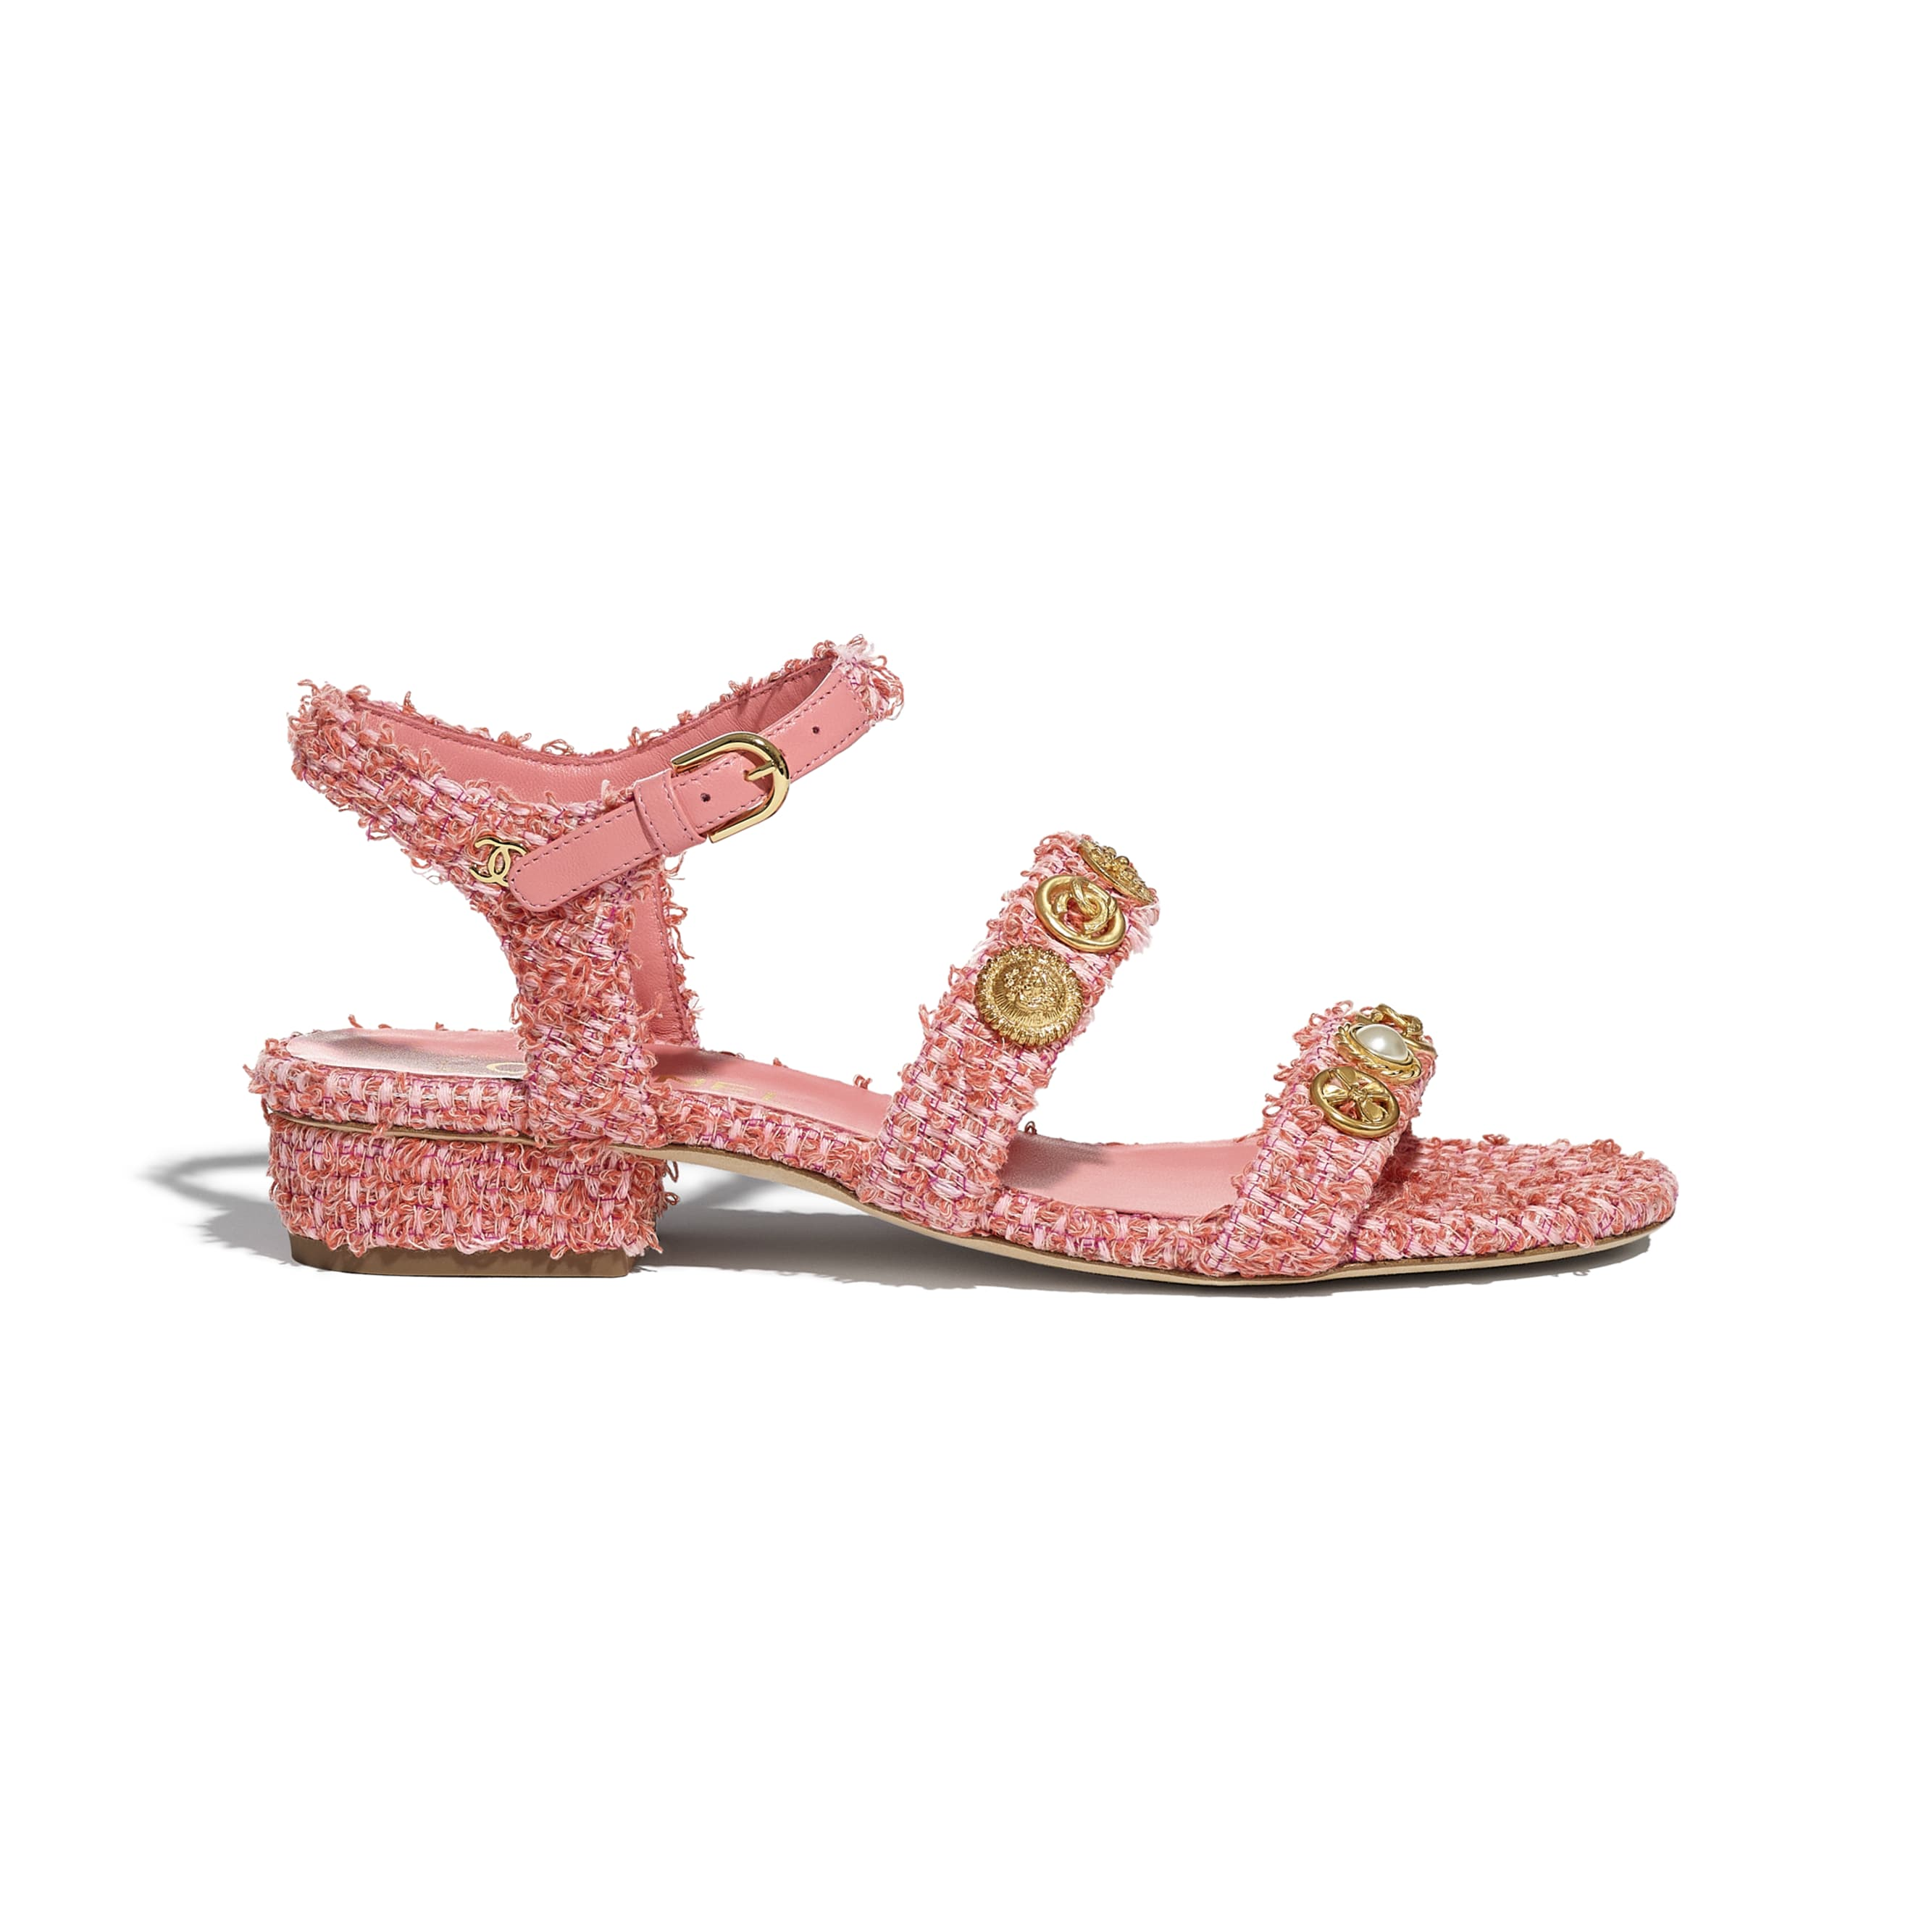 Sandals - Coral & Pink - Cotton Tweed & Jewellery - CHANEL - Default view - see standard sized version